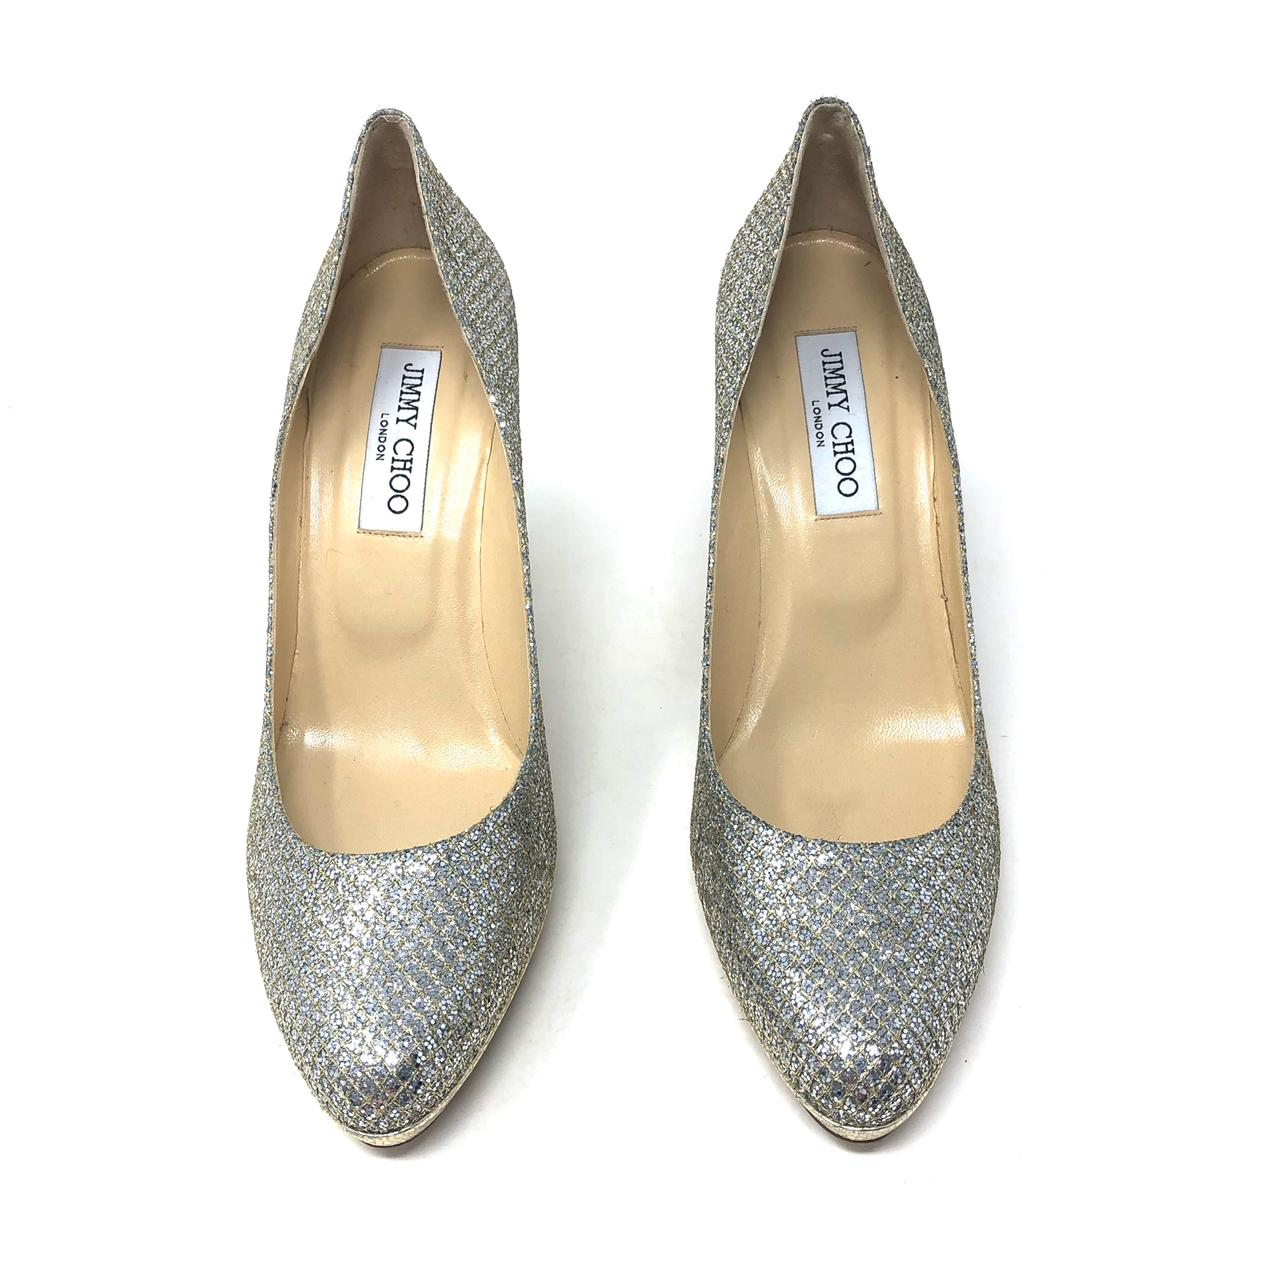 Pumps Jimmy Choo T. 39.5